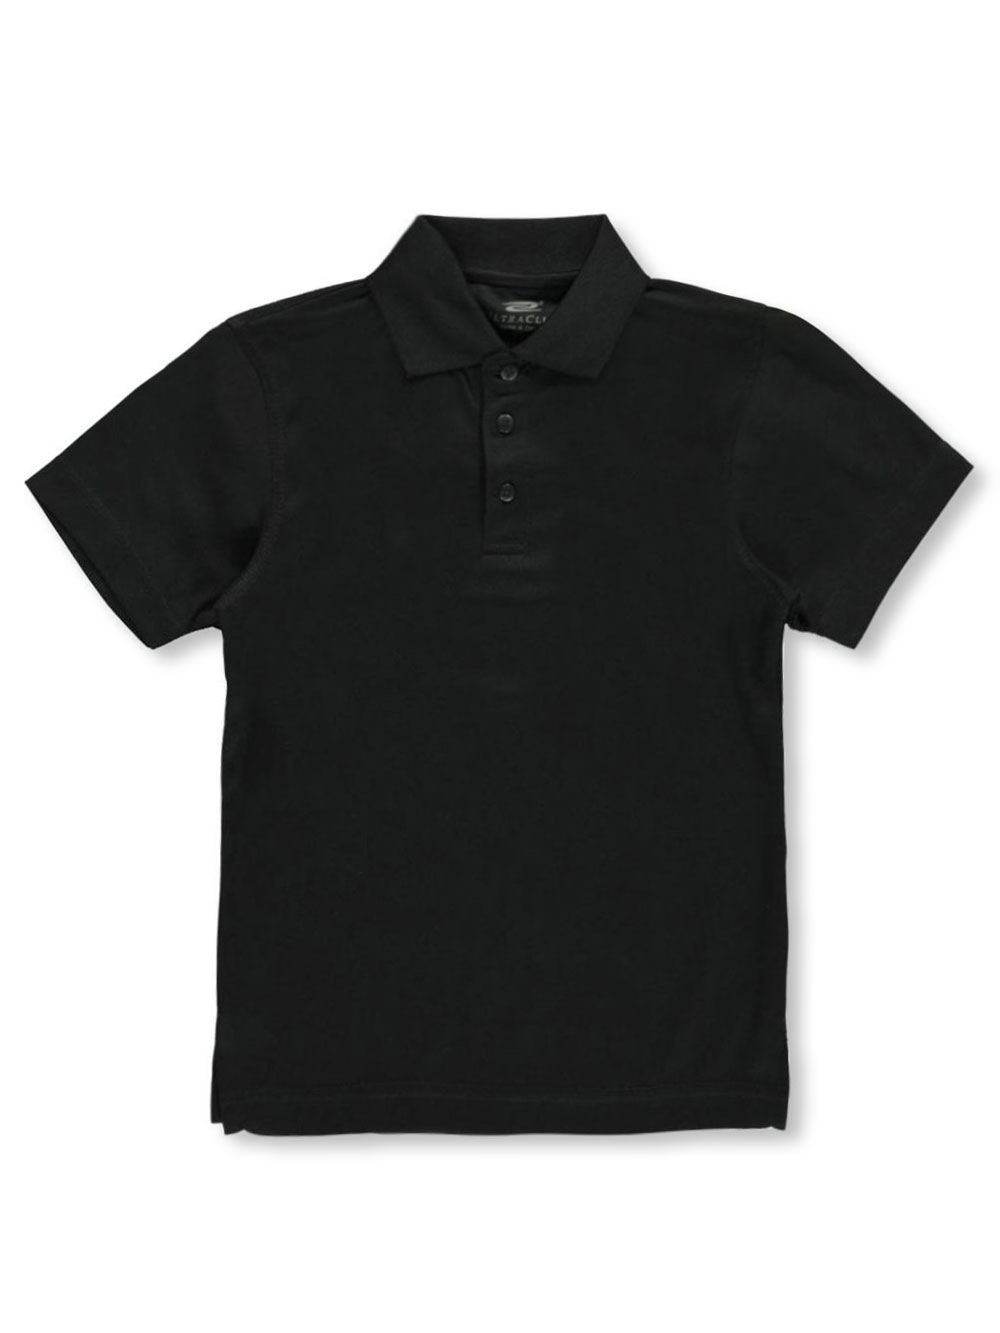 Size Xl Knit Polos for Boys